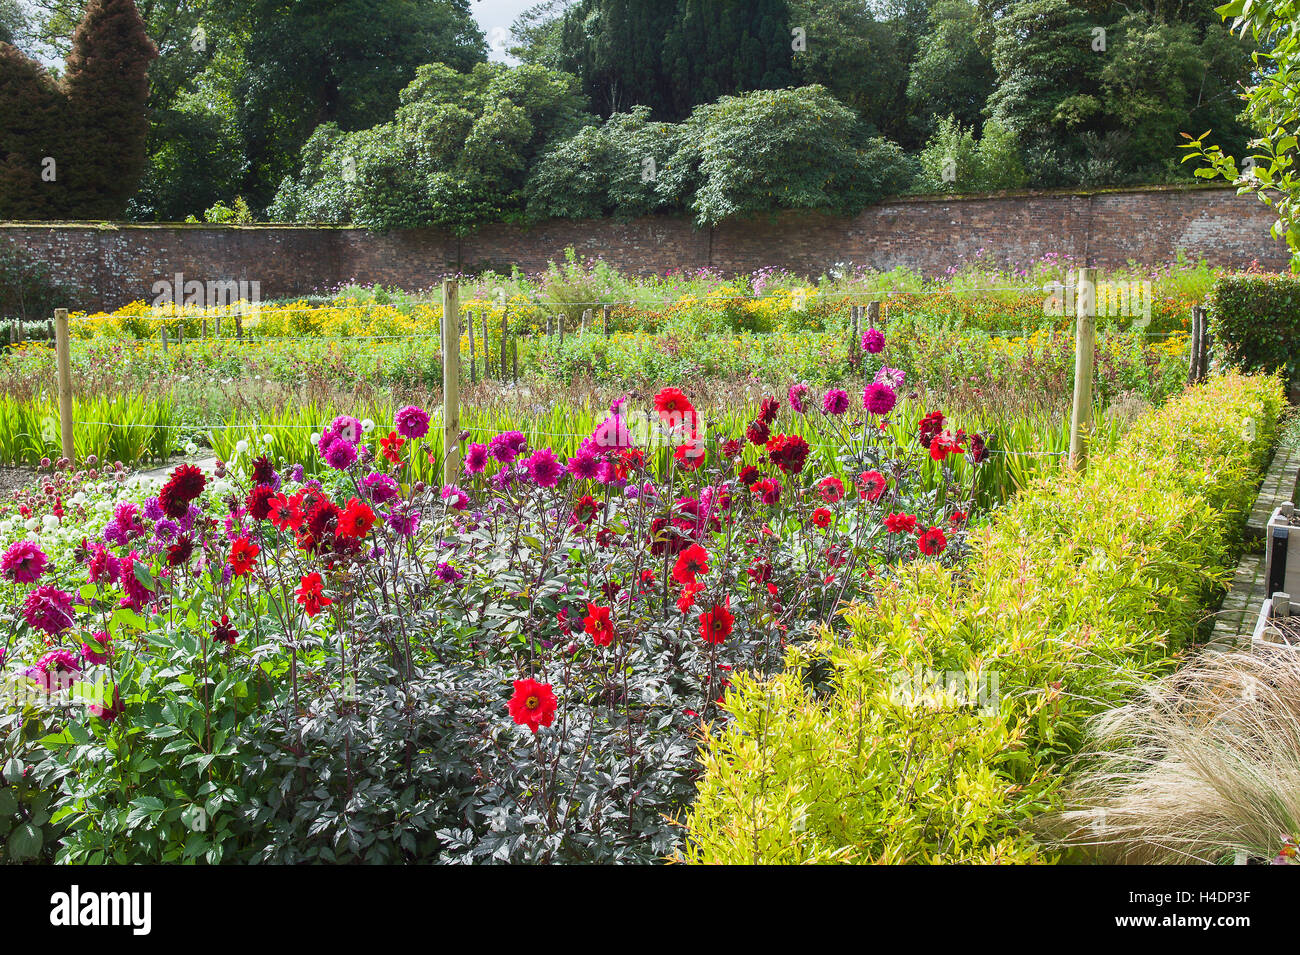 A bed of dahlias in a walled garden at Heligan UK - Stock Image